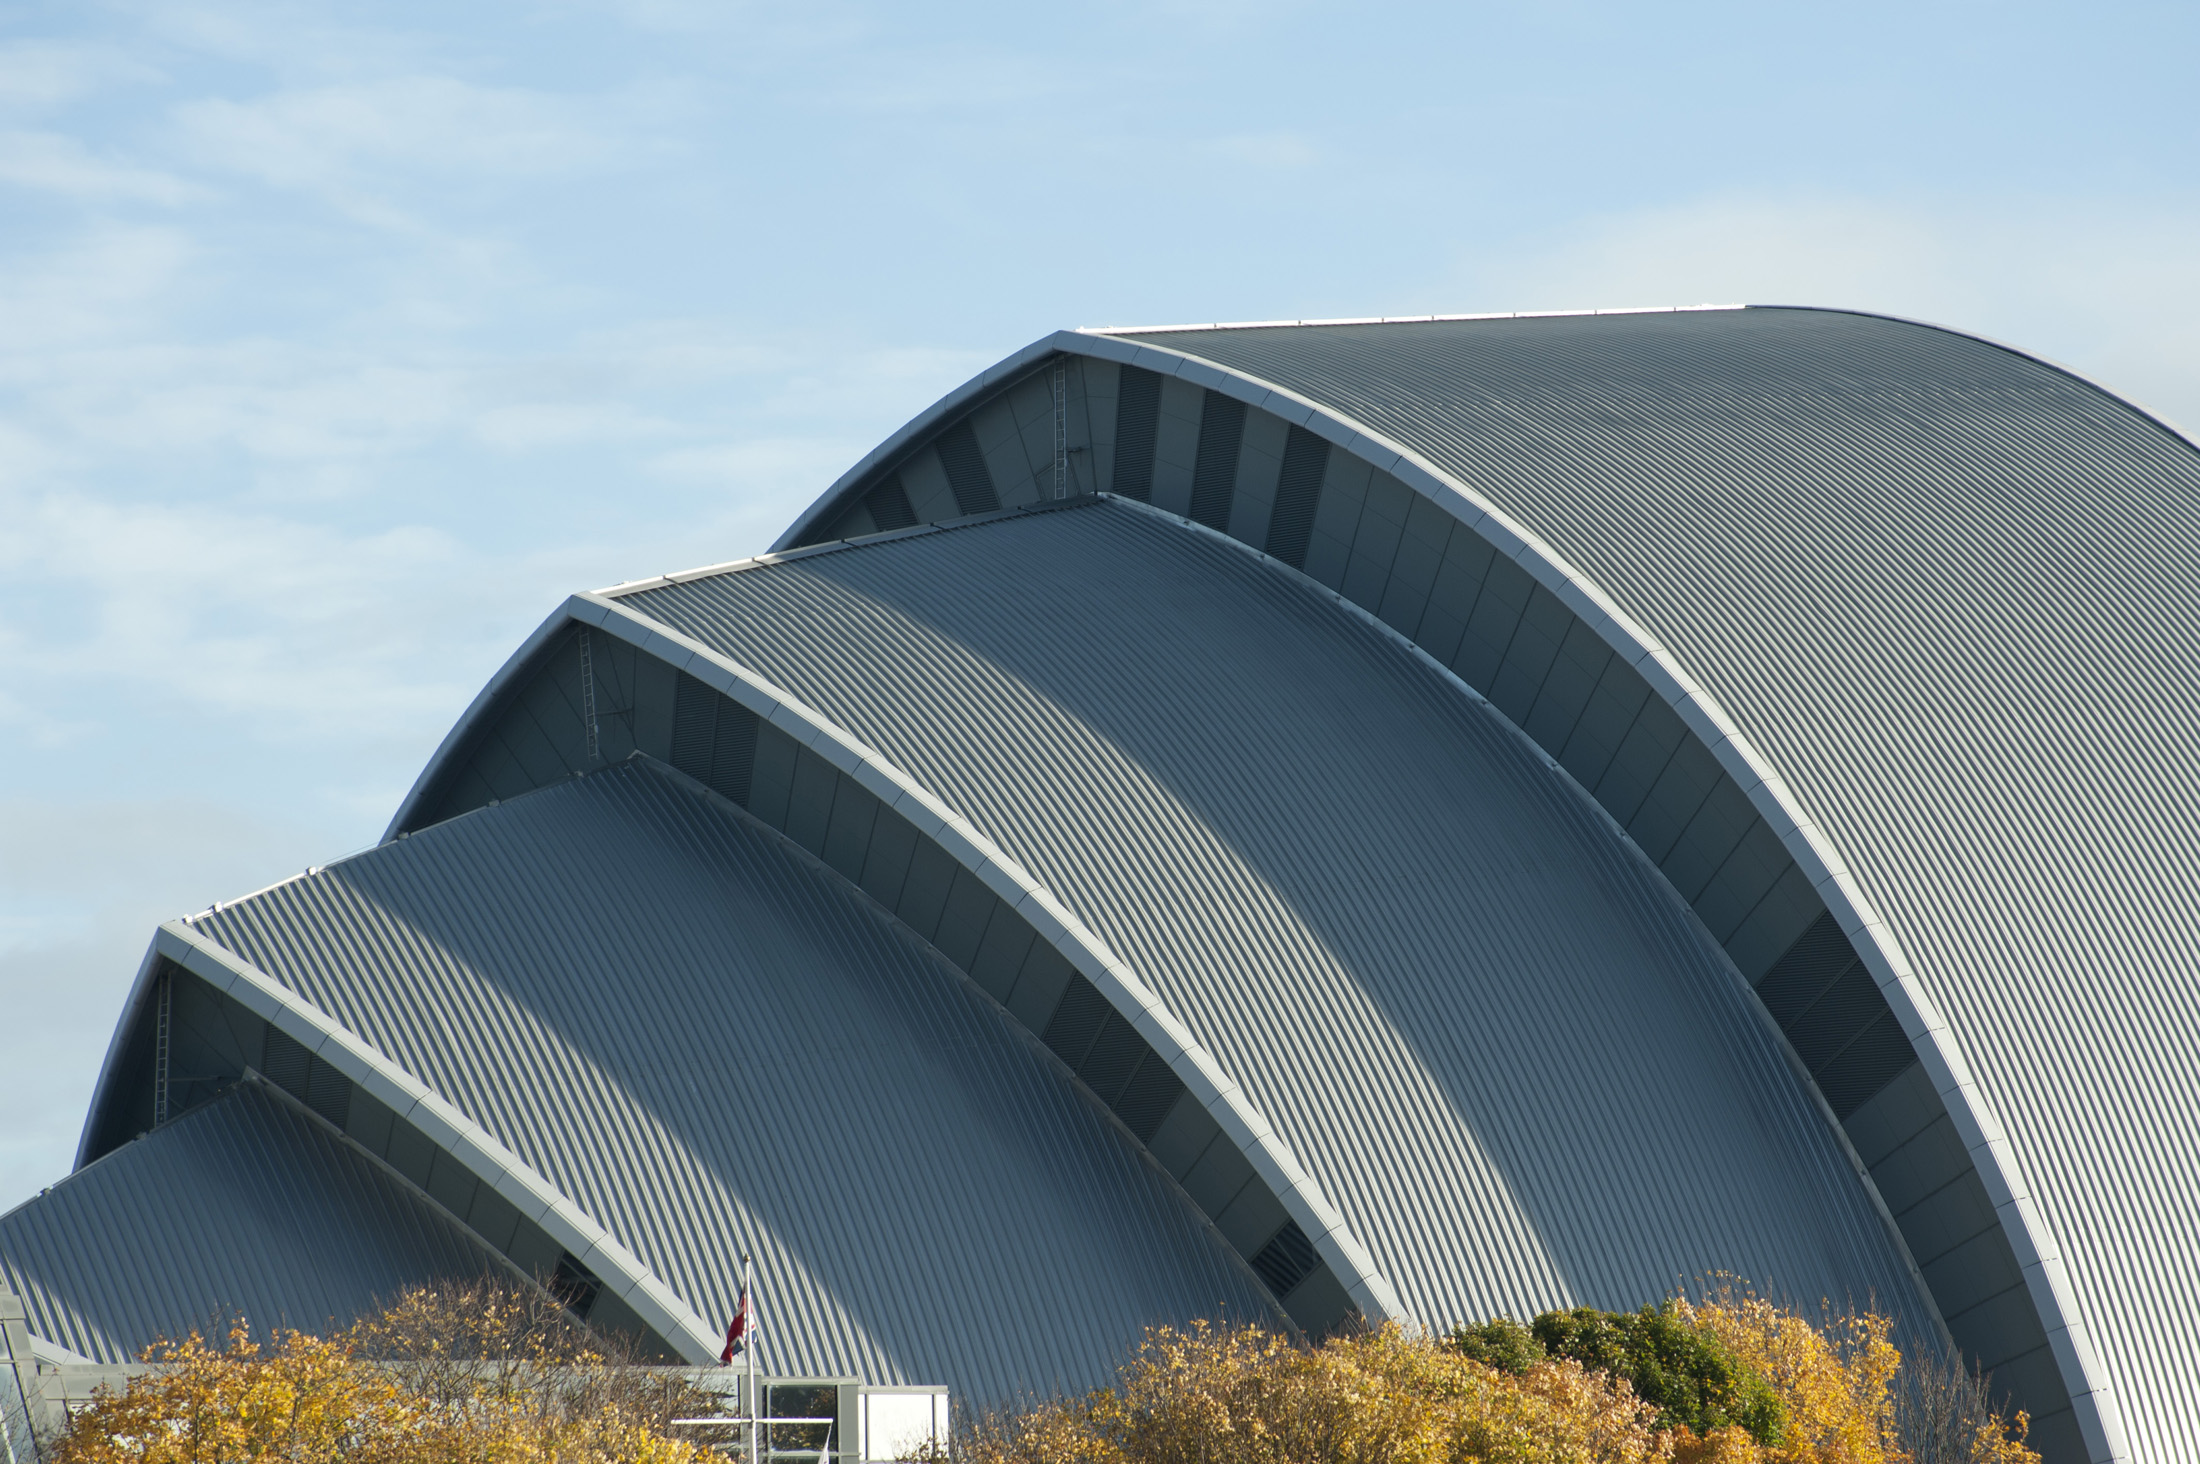 Exterior facade of the distinctive SECC or Scottish Exhibition and Conference Centre in Glasgow on the River Clyde which is Scotlands largest exhibition centre